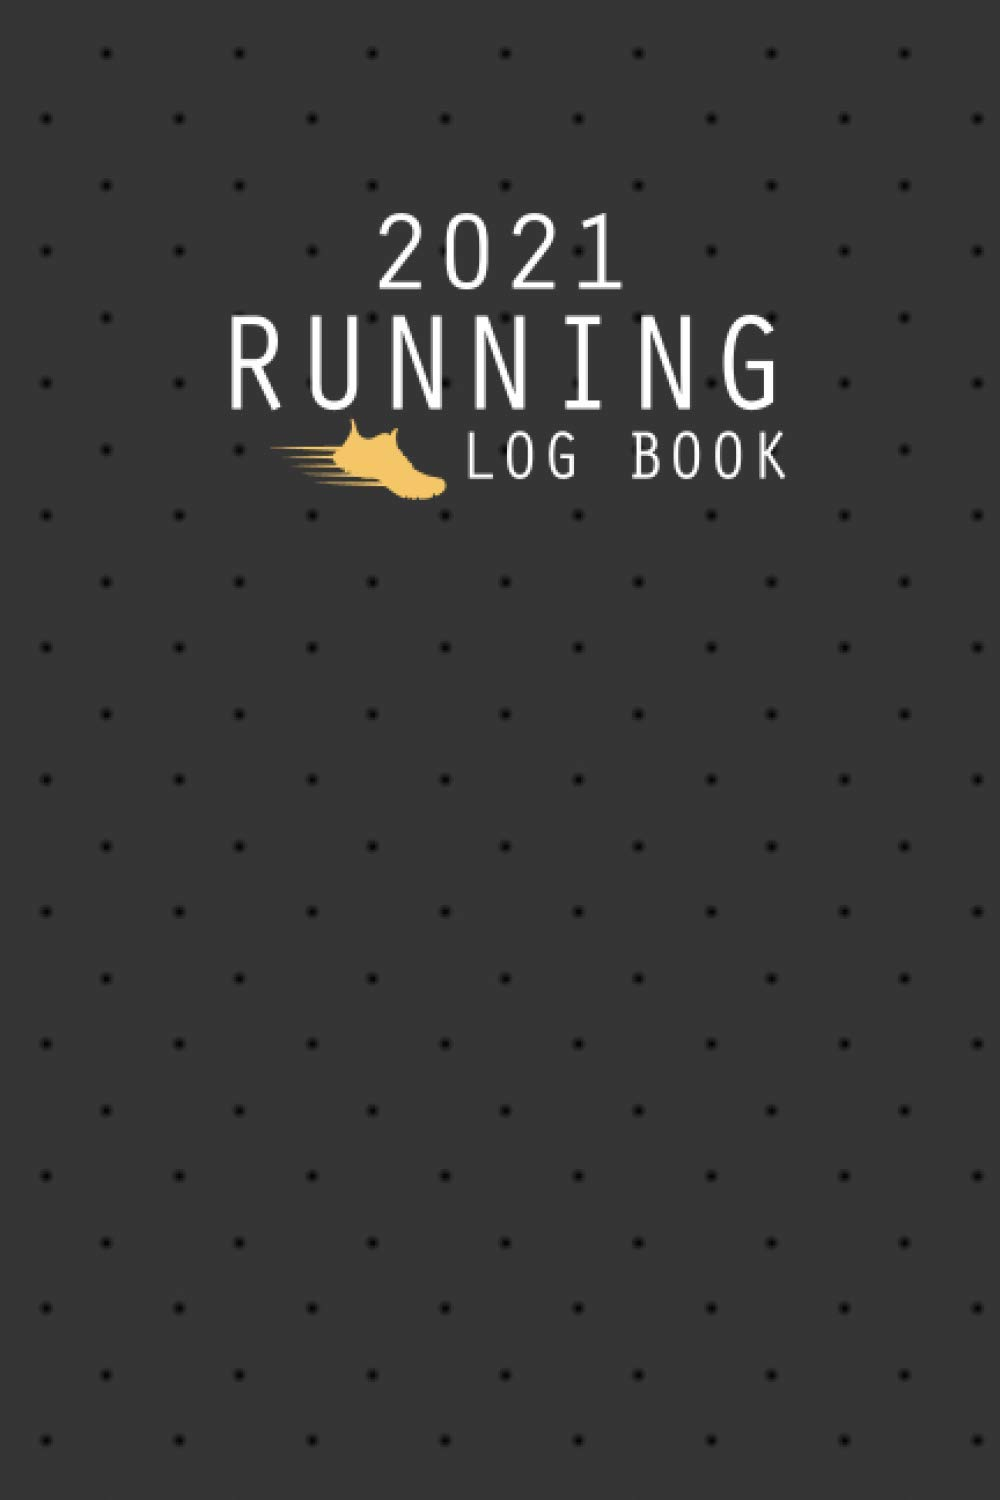 Running Log Book: The Complete 365 Day Runner's Day through Day Log Monthly Calendar Planner   Race Bucket List   Race Record   Daily and Weekly Runner ... Book Diary   Run Workouts Journal Notebook